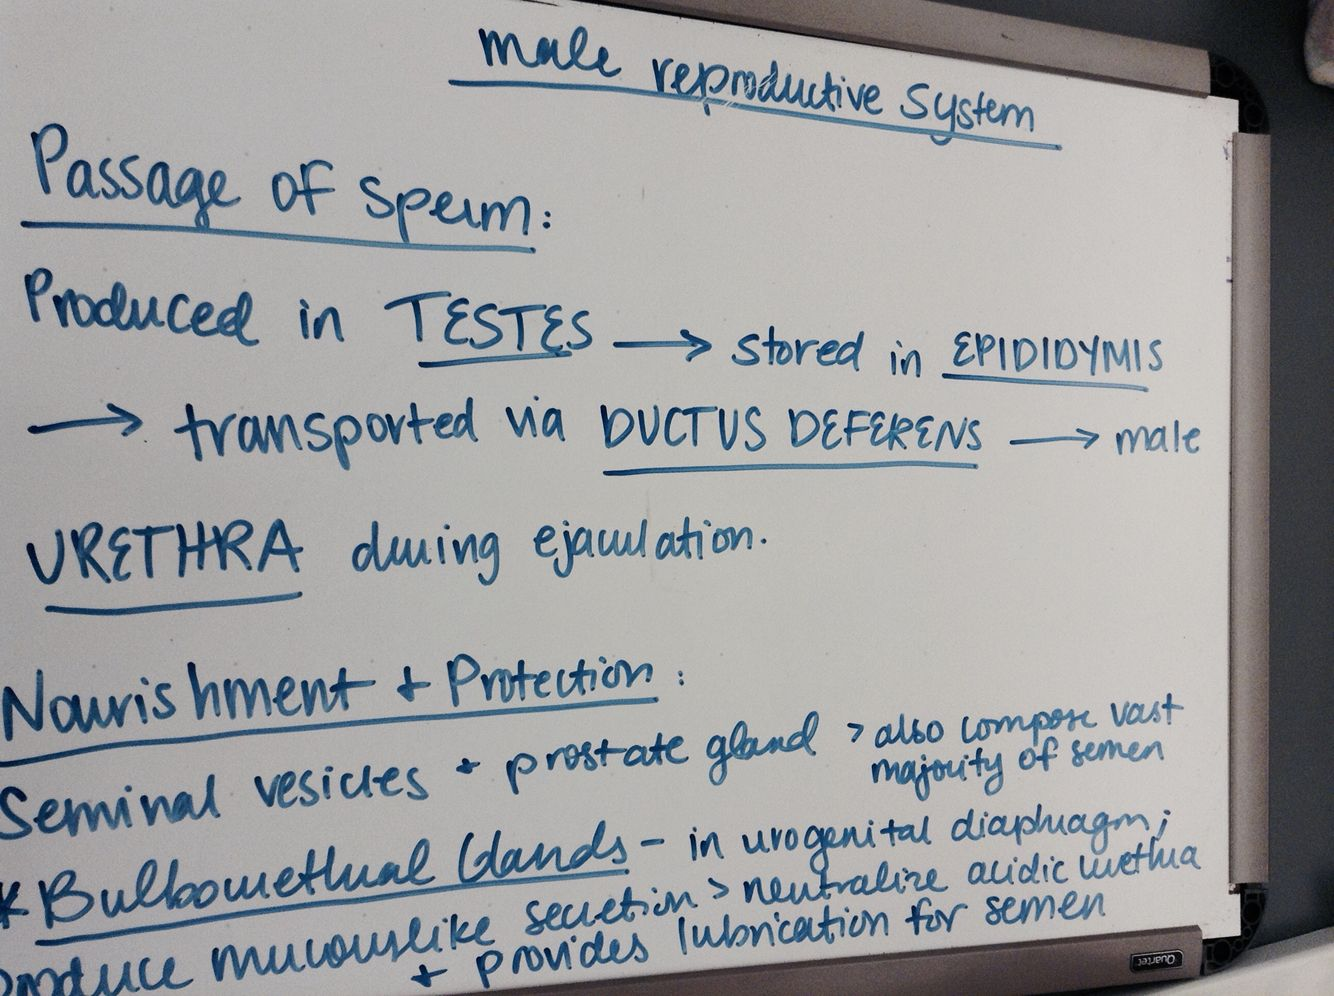 Notes On Male Reproductive System  Motivation  Pinterest -6990